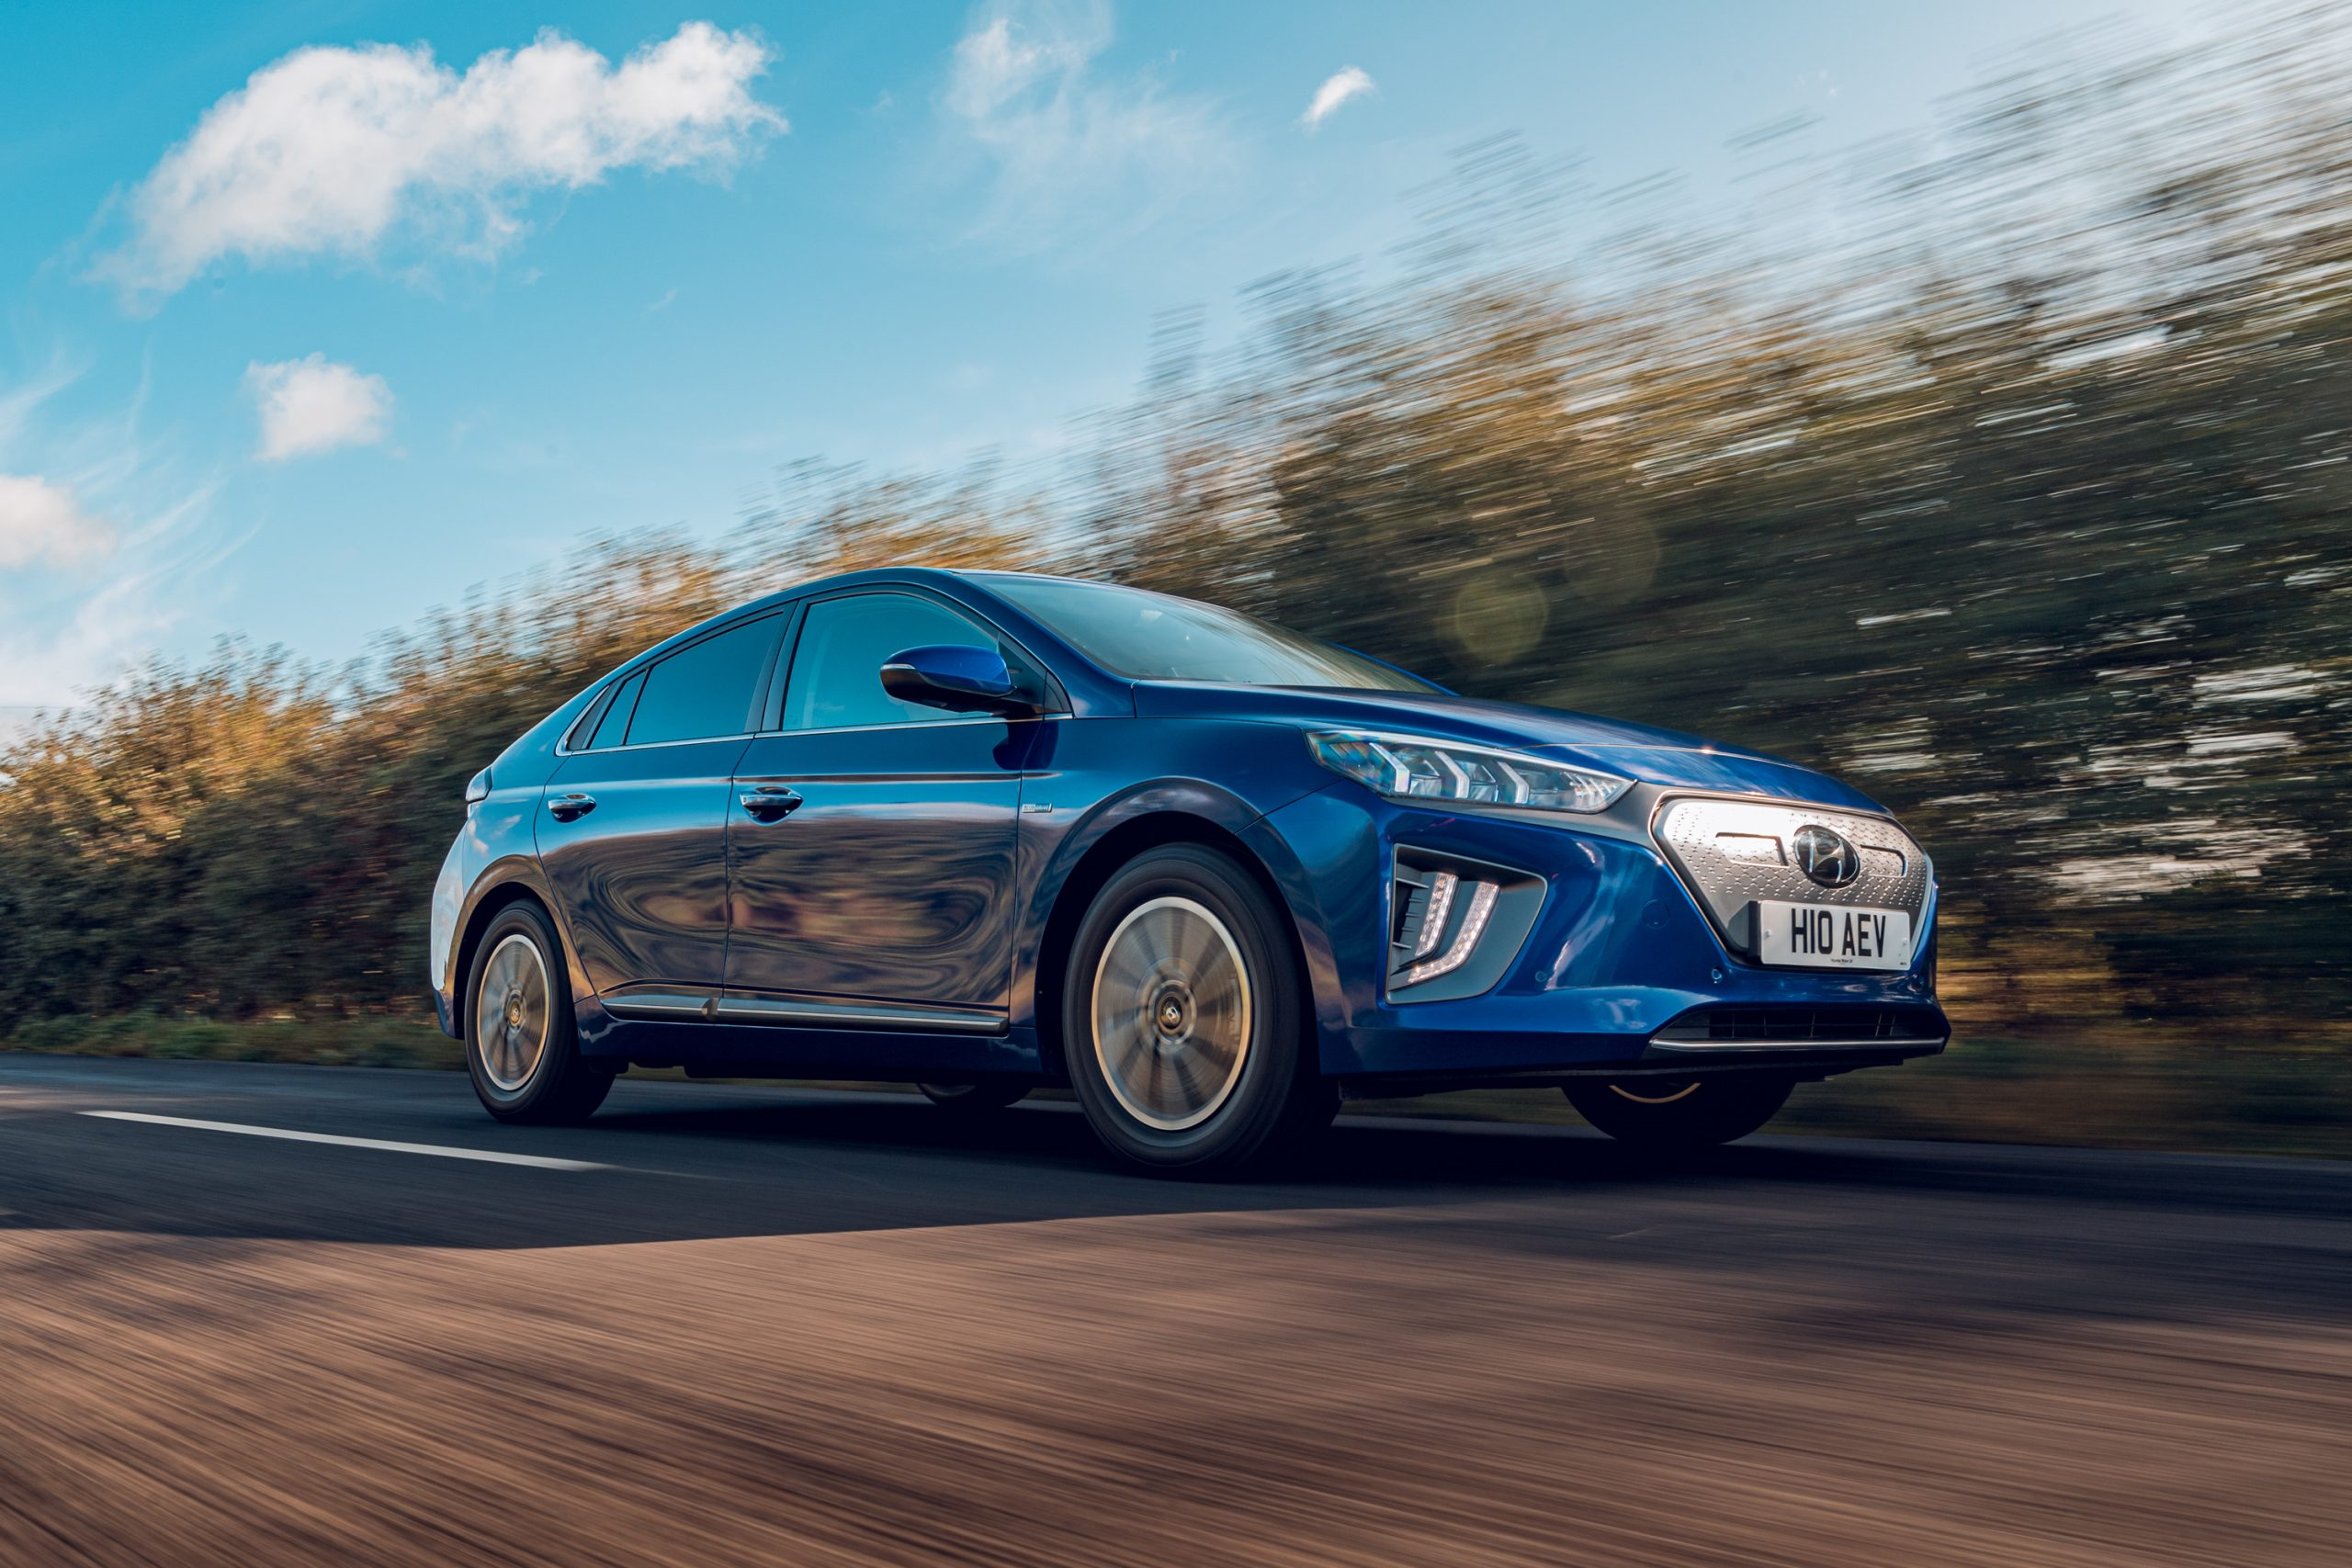 2021 Hyundai Ioniq Electric driving on a country road